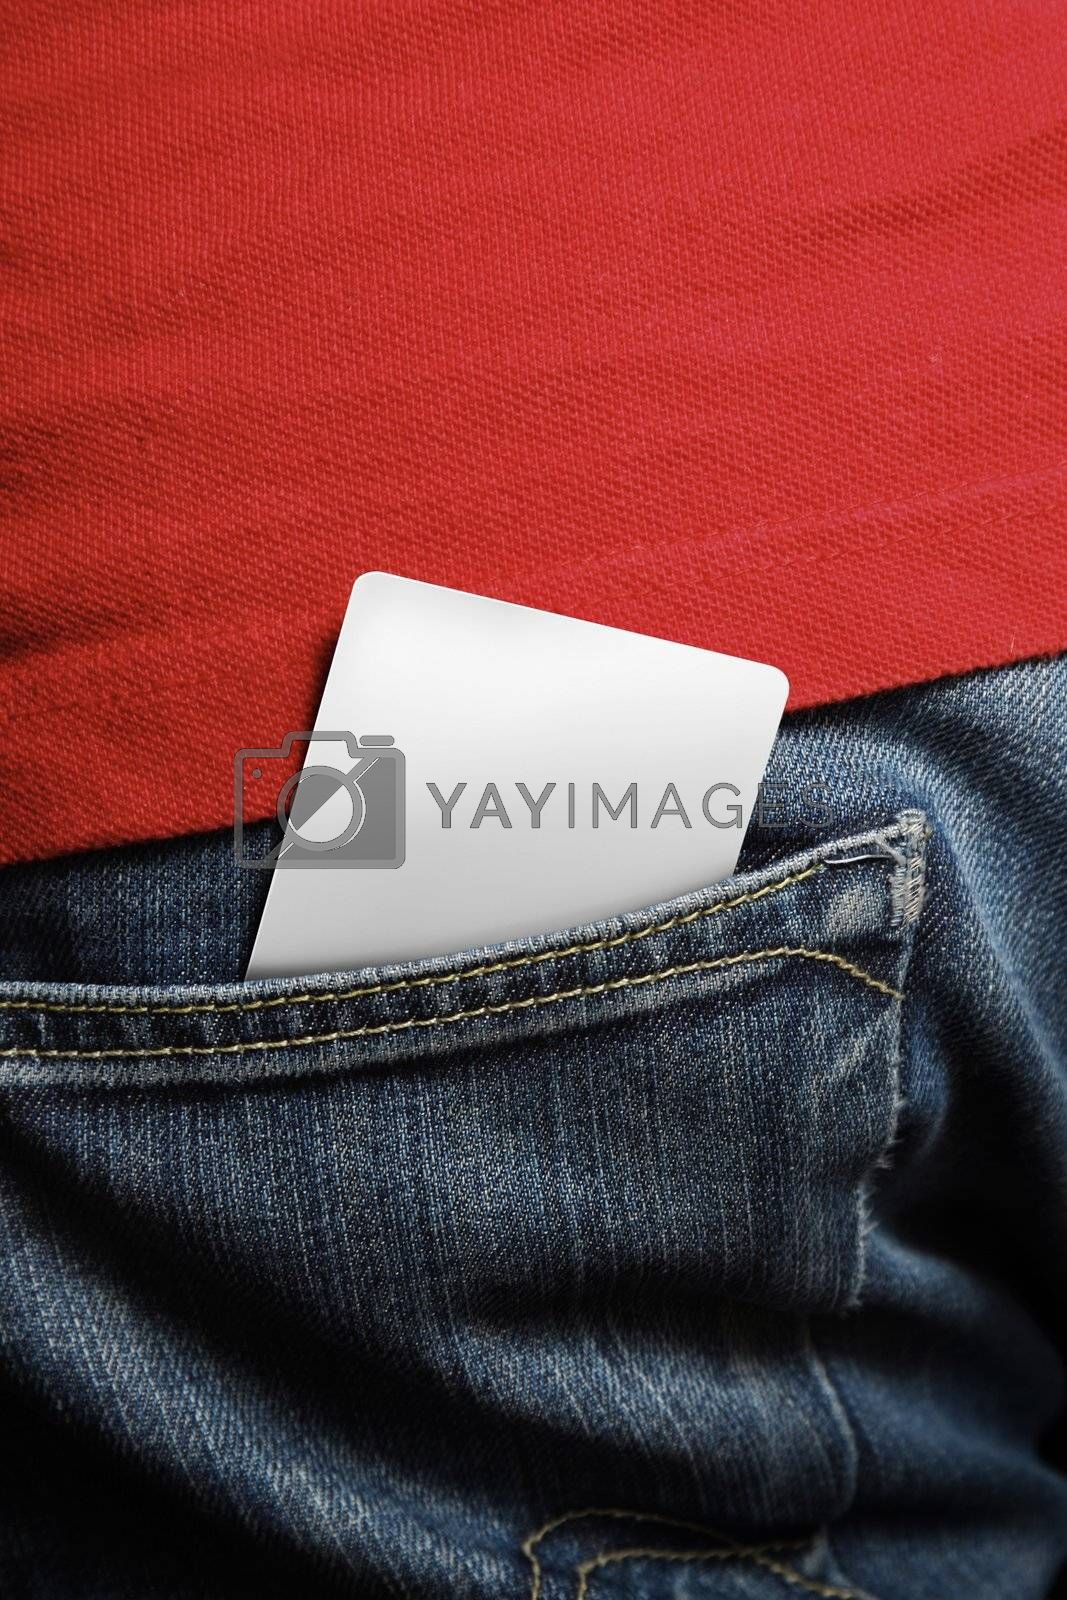 Blank card in a mans back pocket - insert your own design for any card design such as school, member, club, credit or debit cards